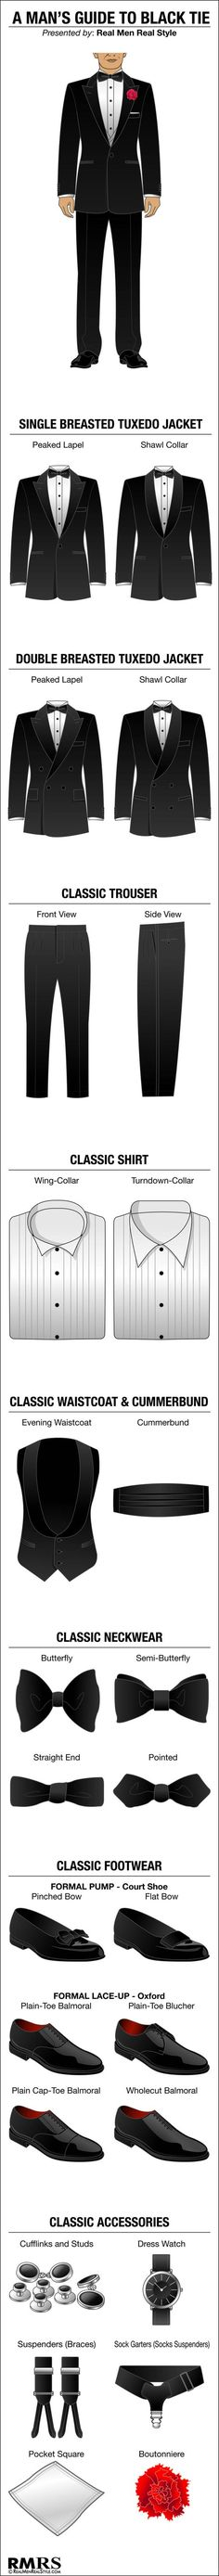 Easy visual guide on how to wear a black tie